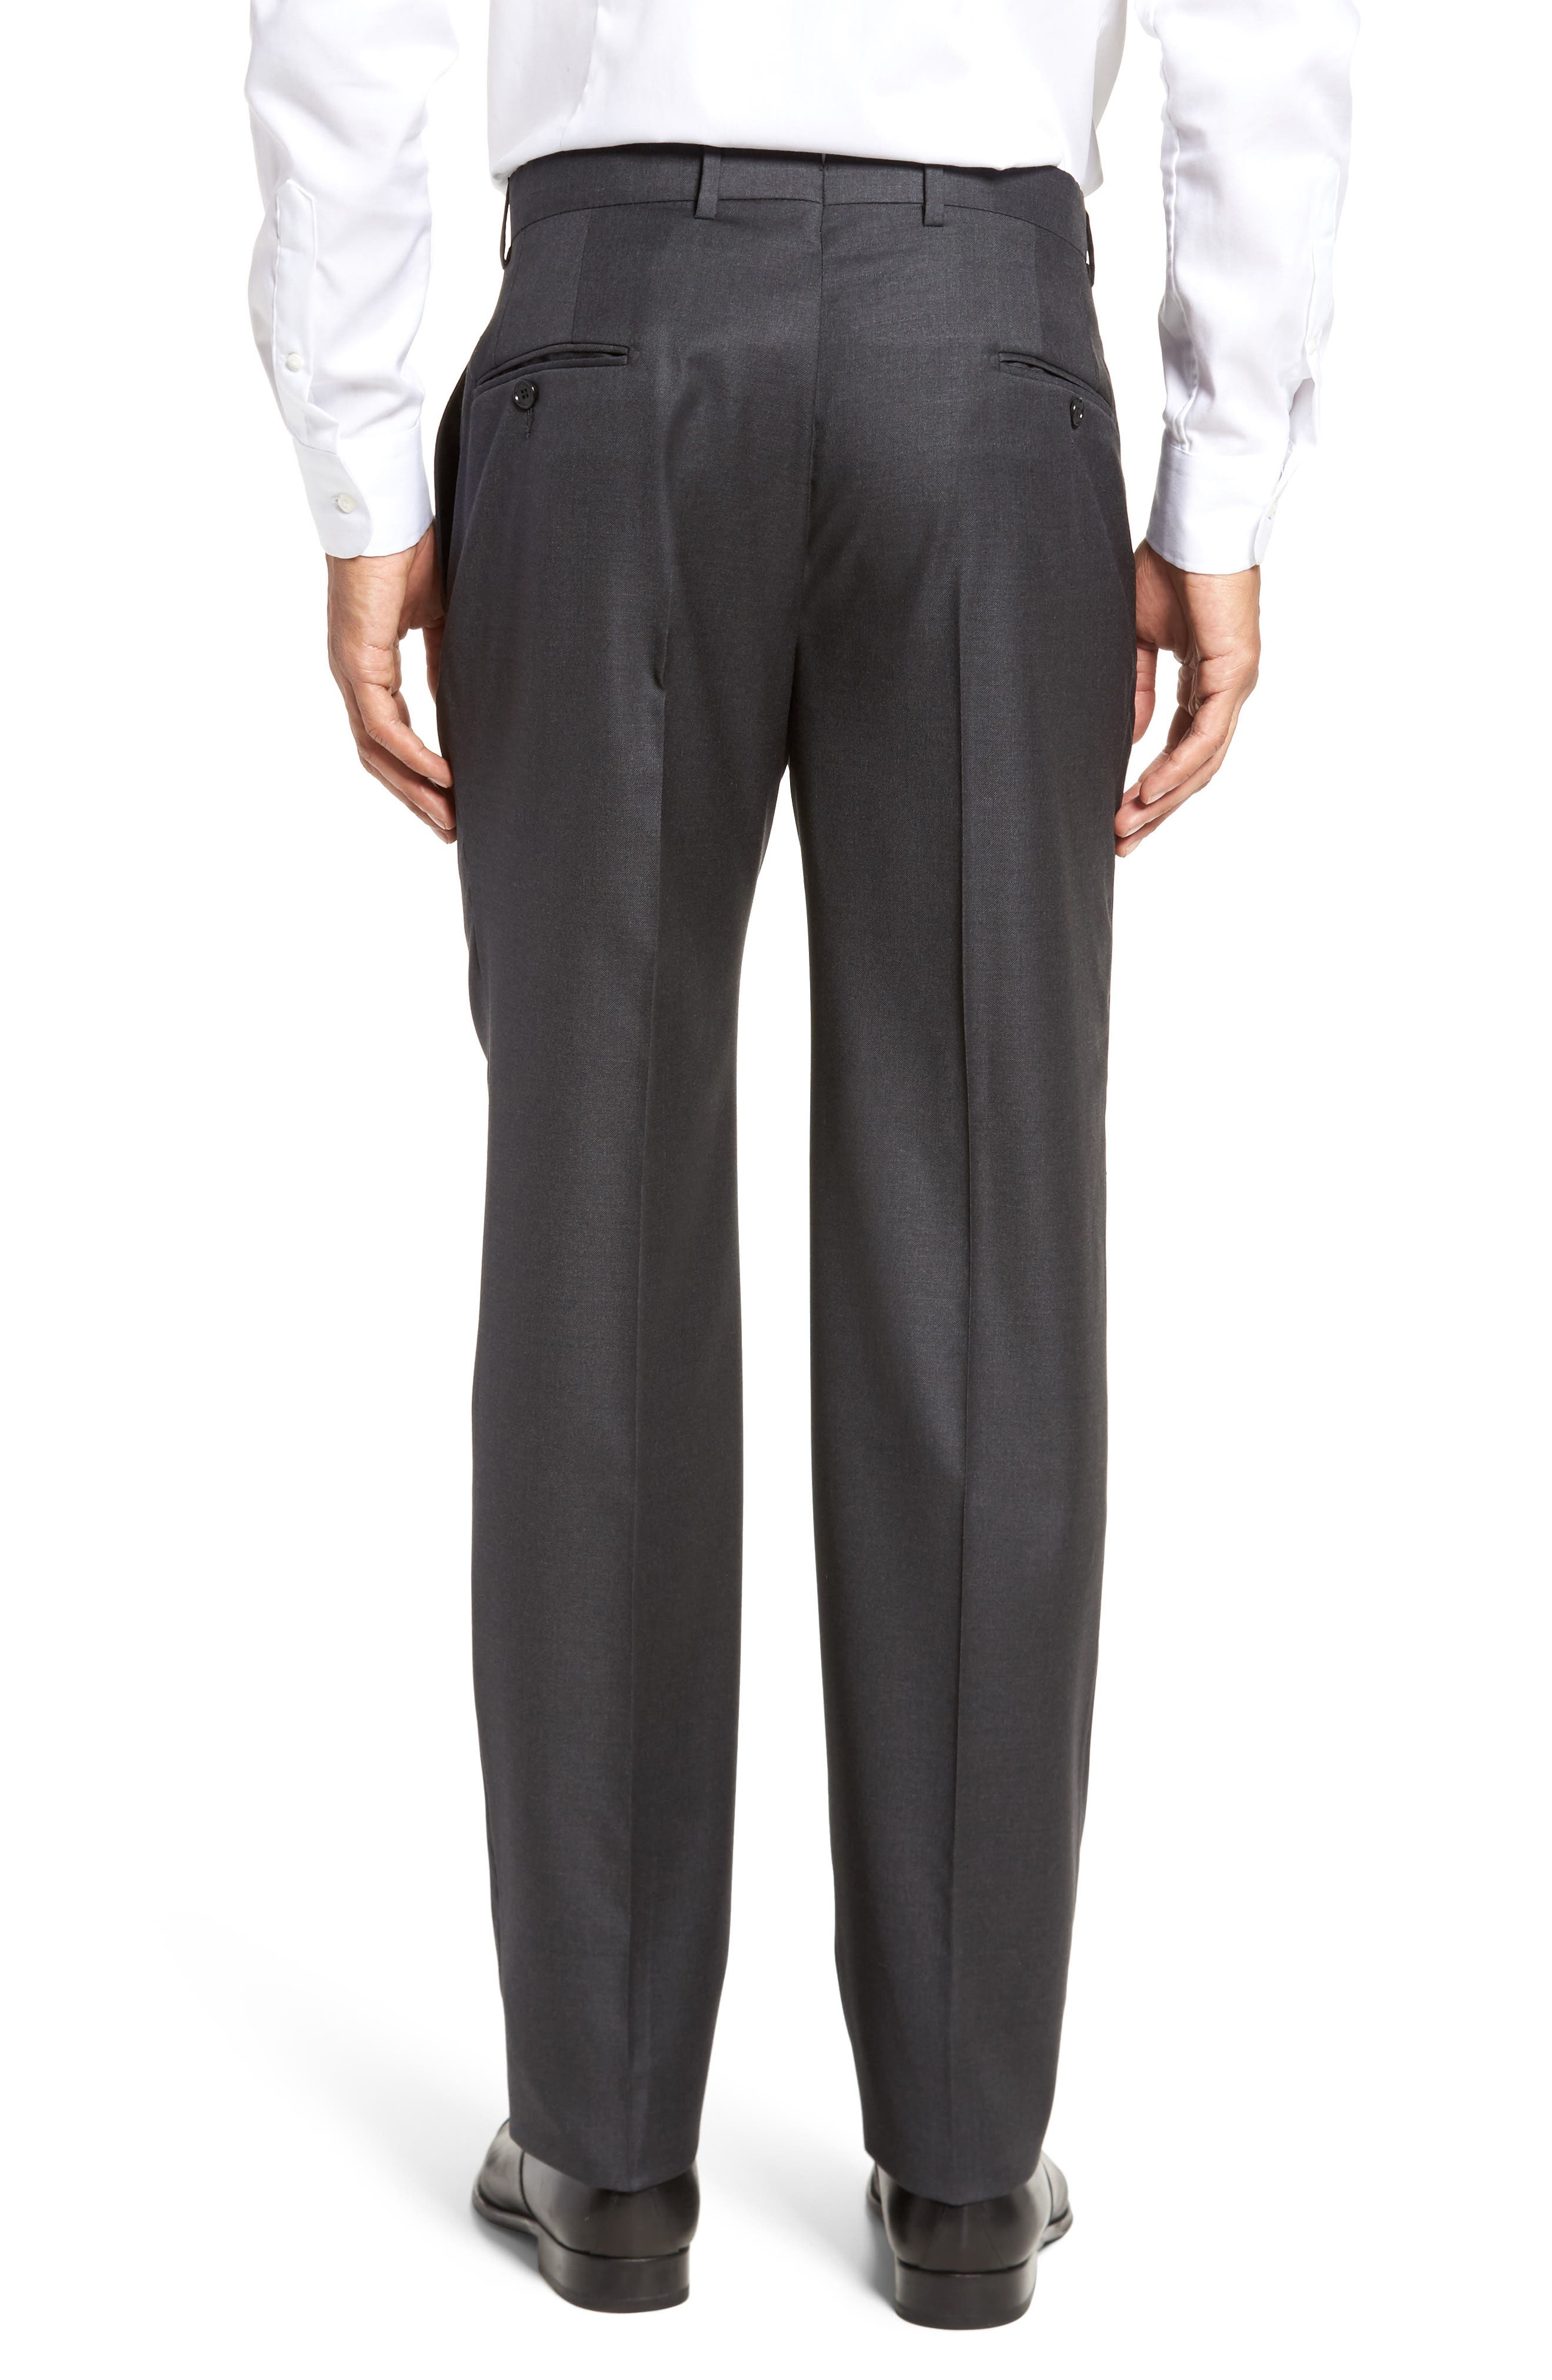 Classic B Fit Flat Front Solid Wool Trousers,                             Alternate thumbnail 3, color,                             CHARCOAL SHARKSKIN